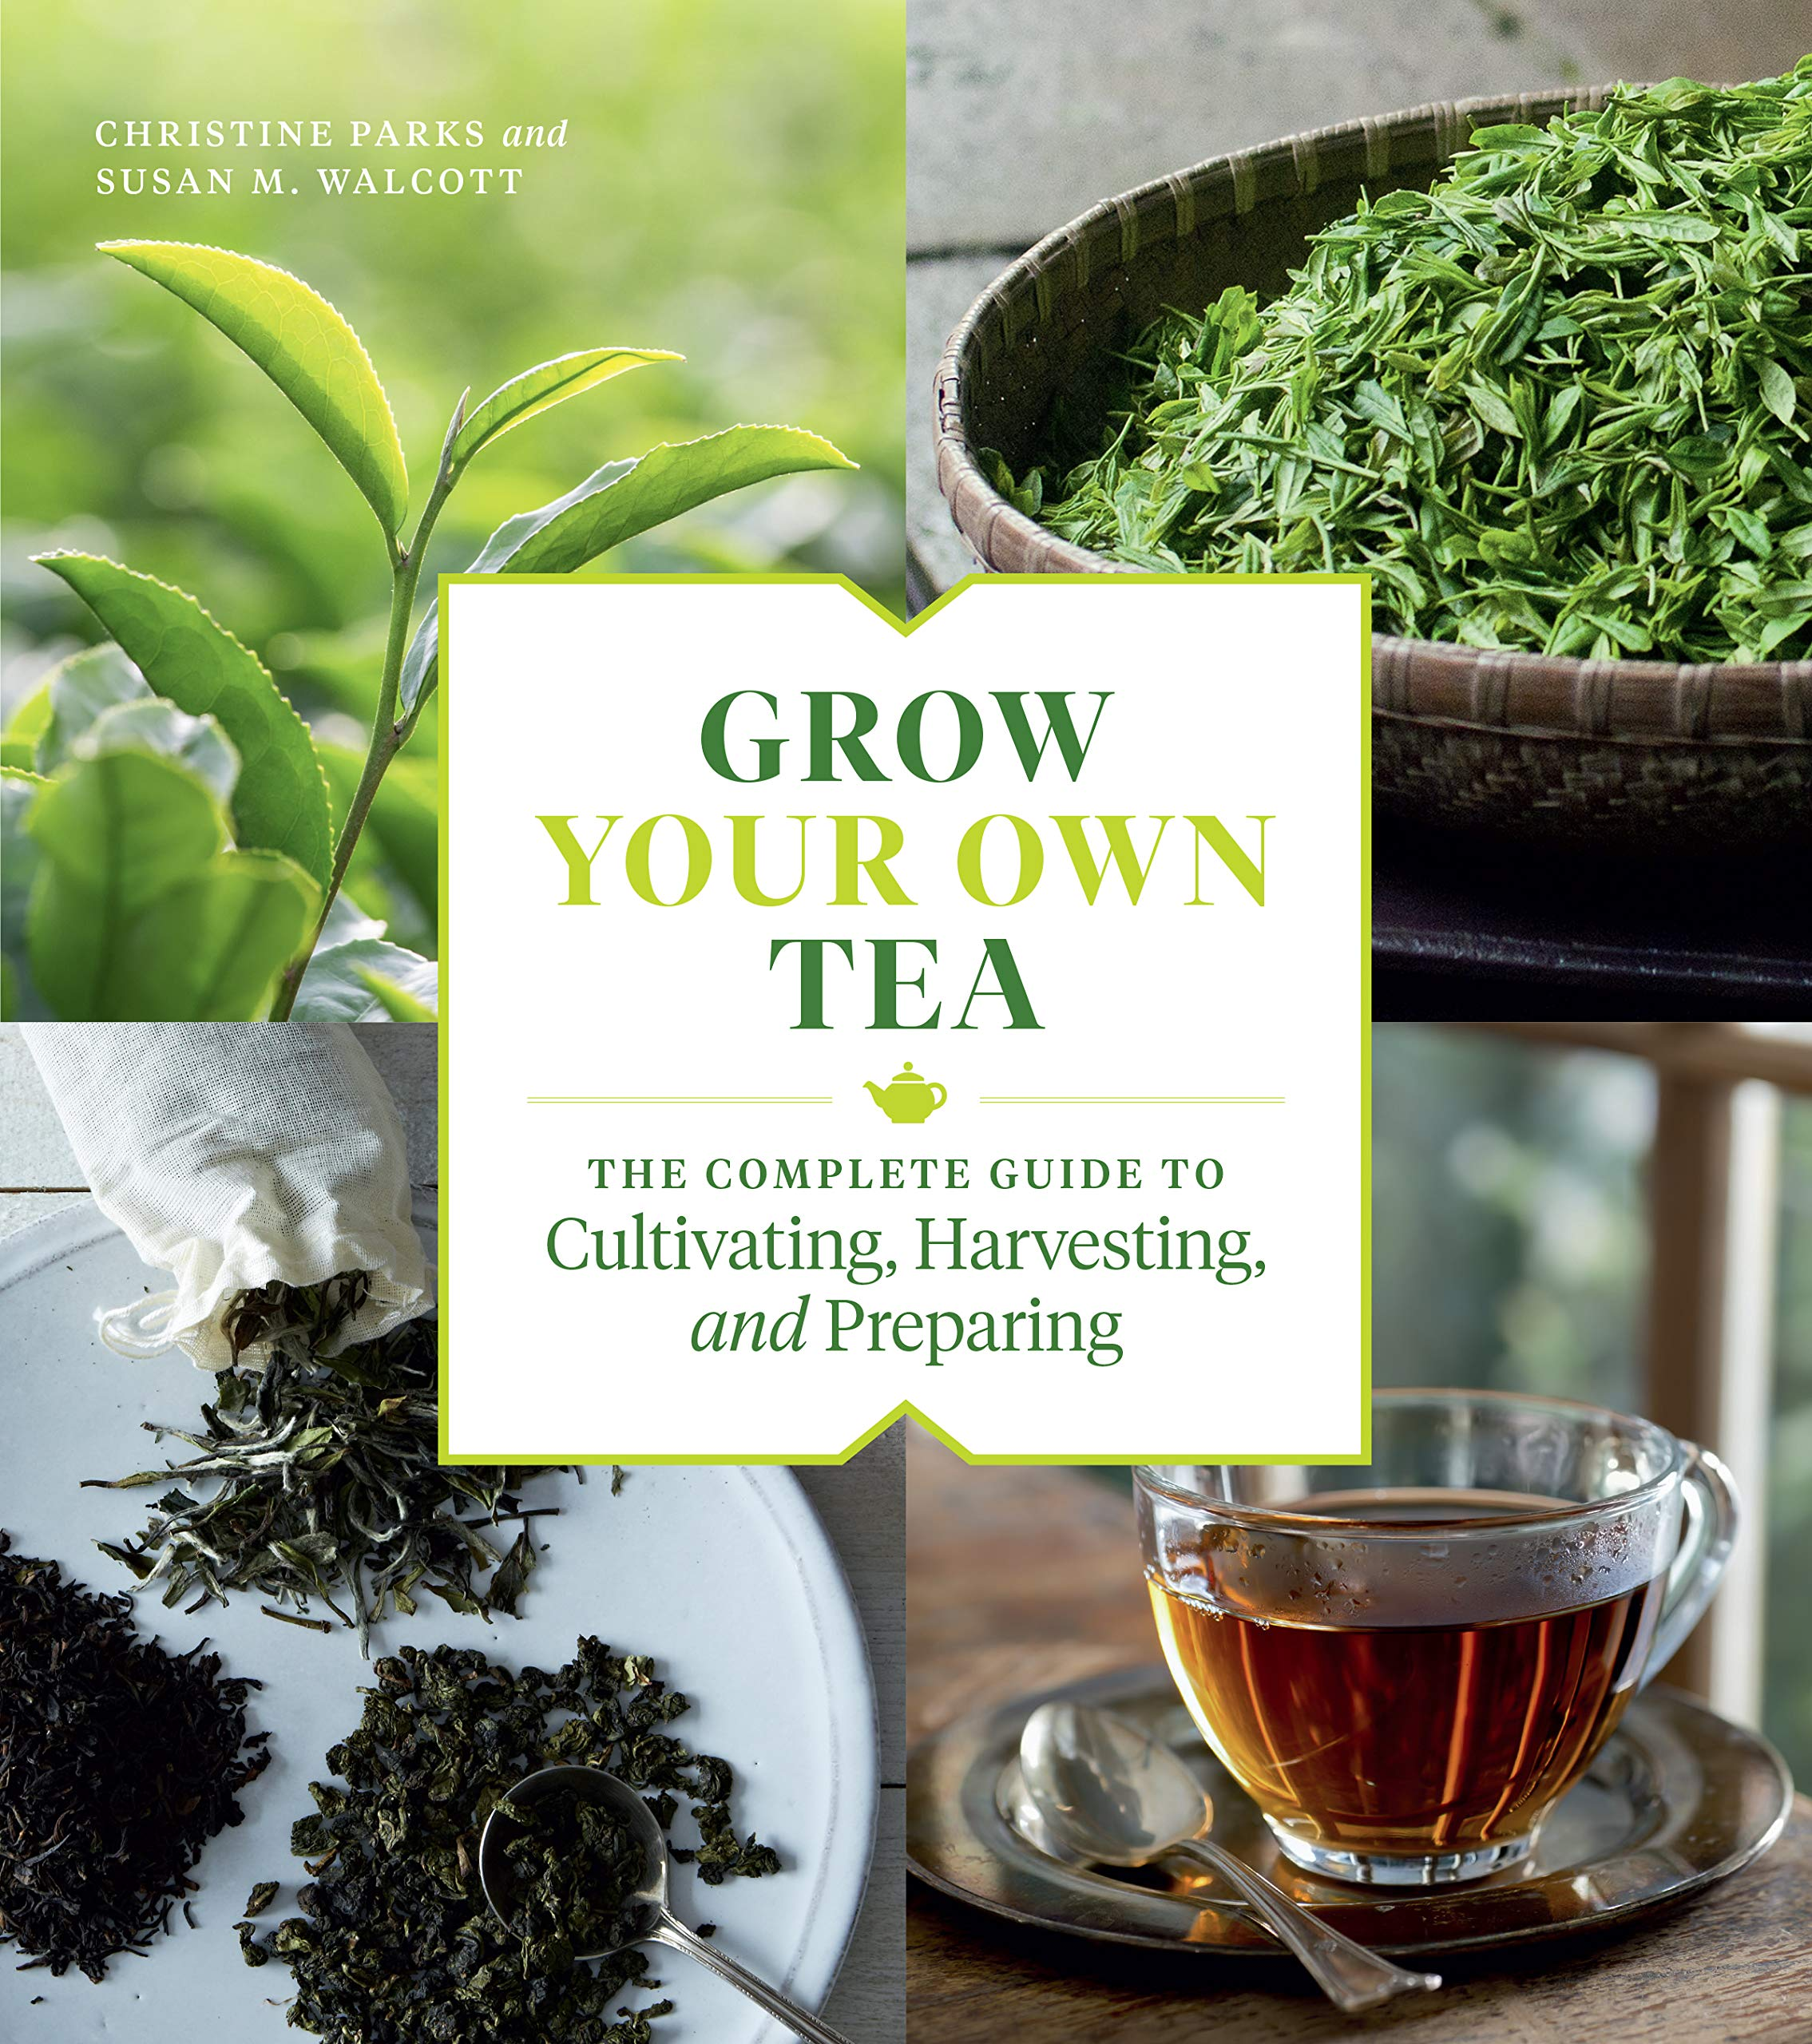 Image OfGrow Your Own Tea: The Complete Guide To Cultivating, Harvesting, And Preparing